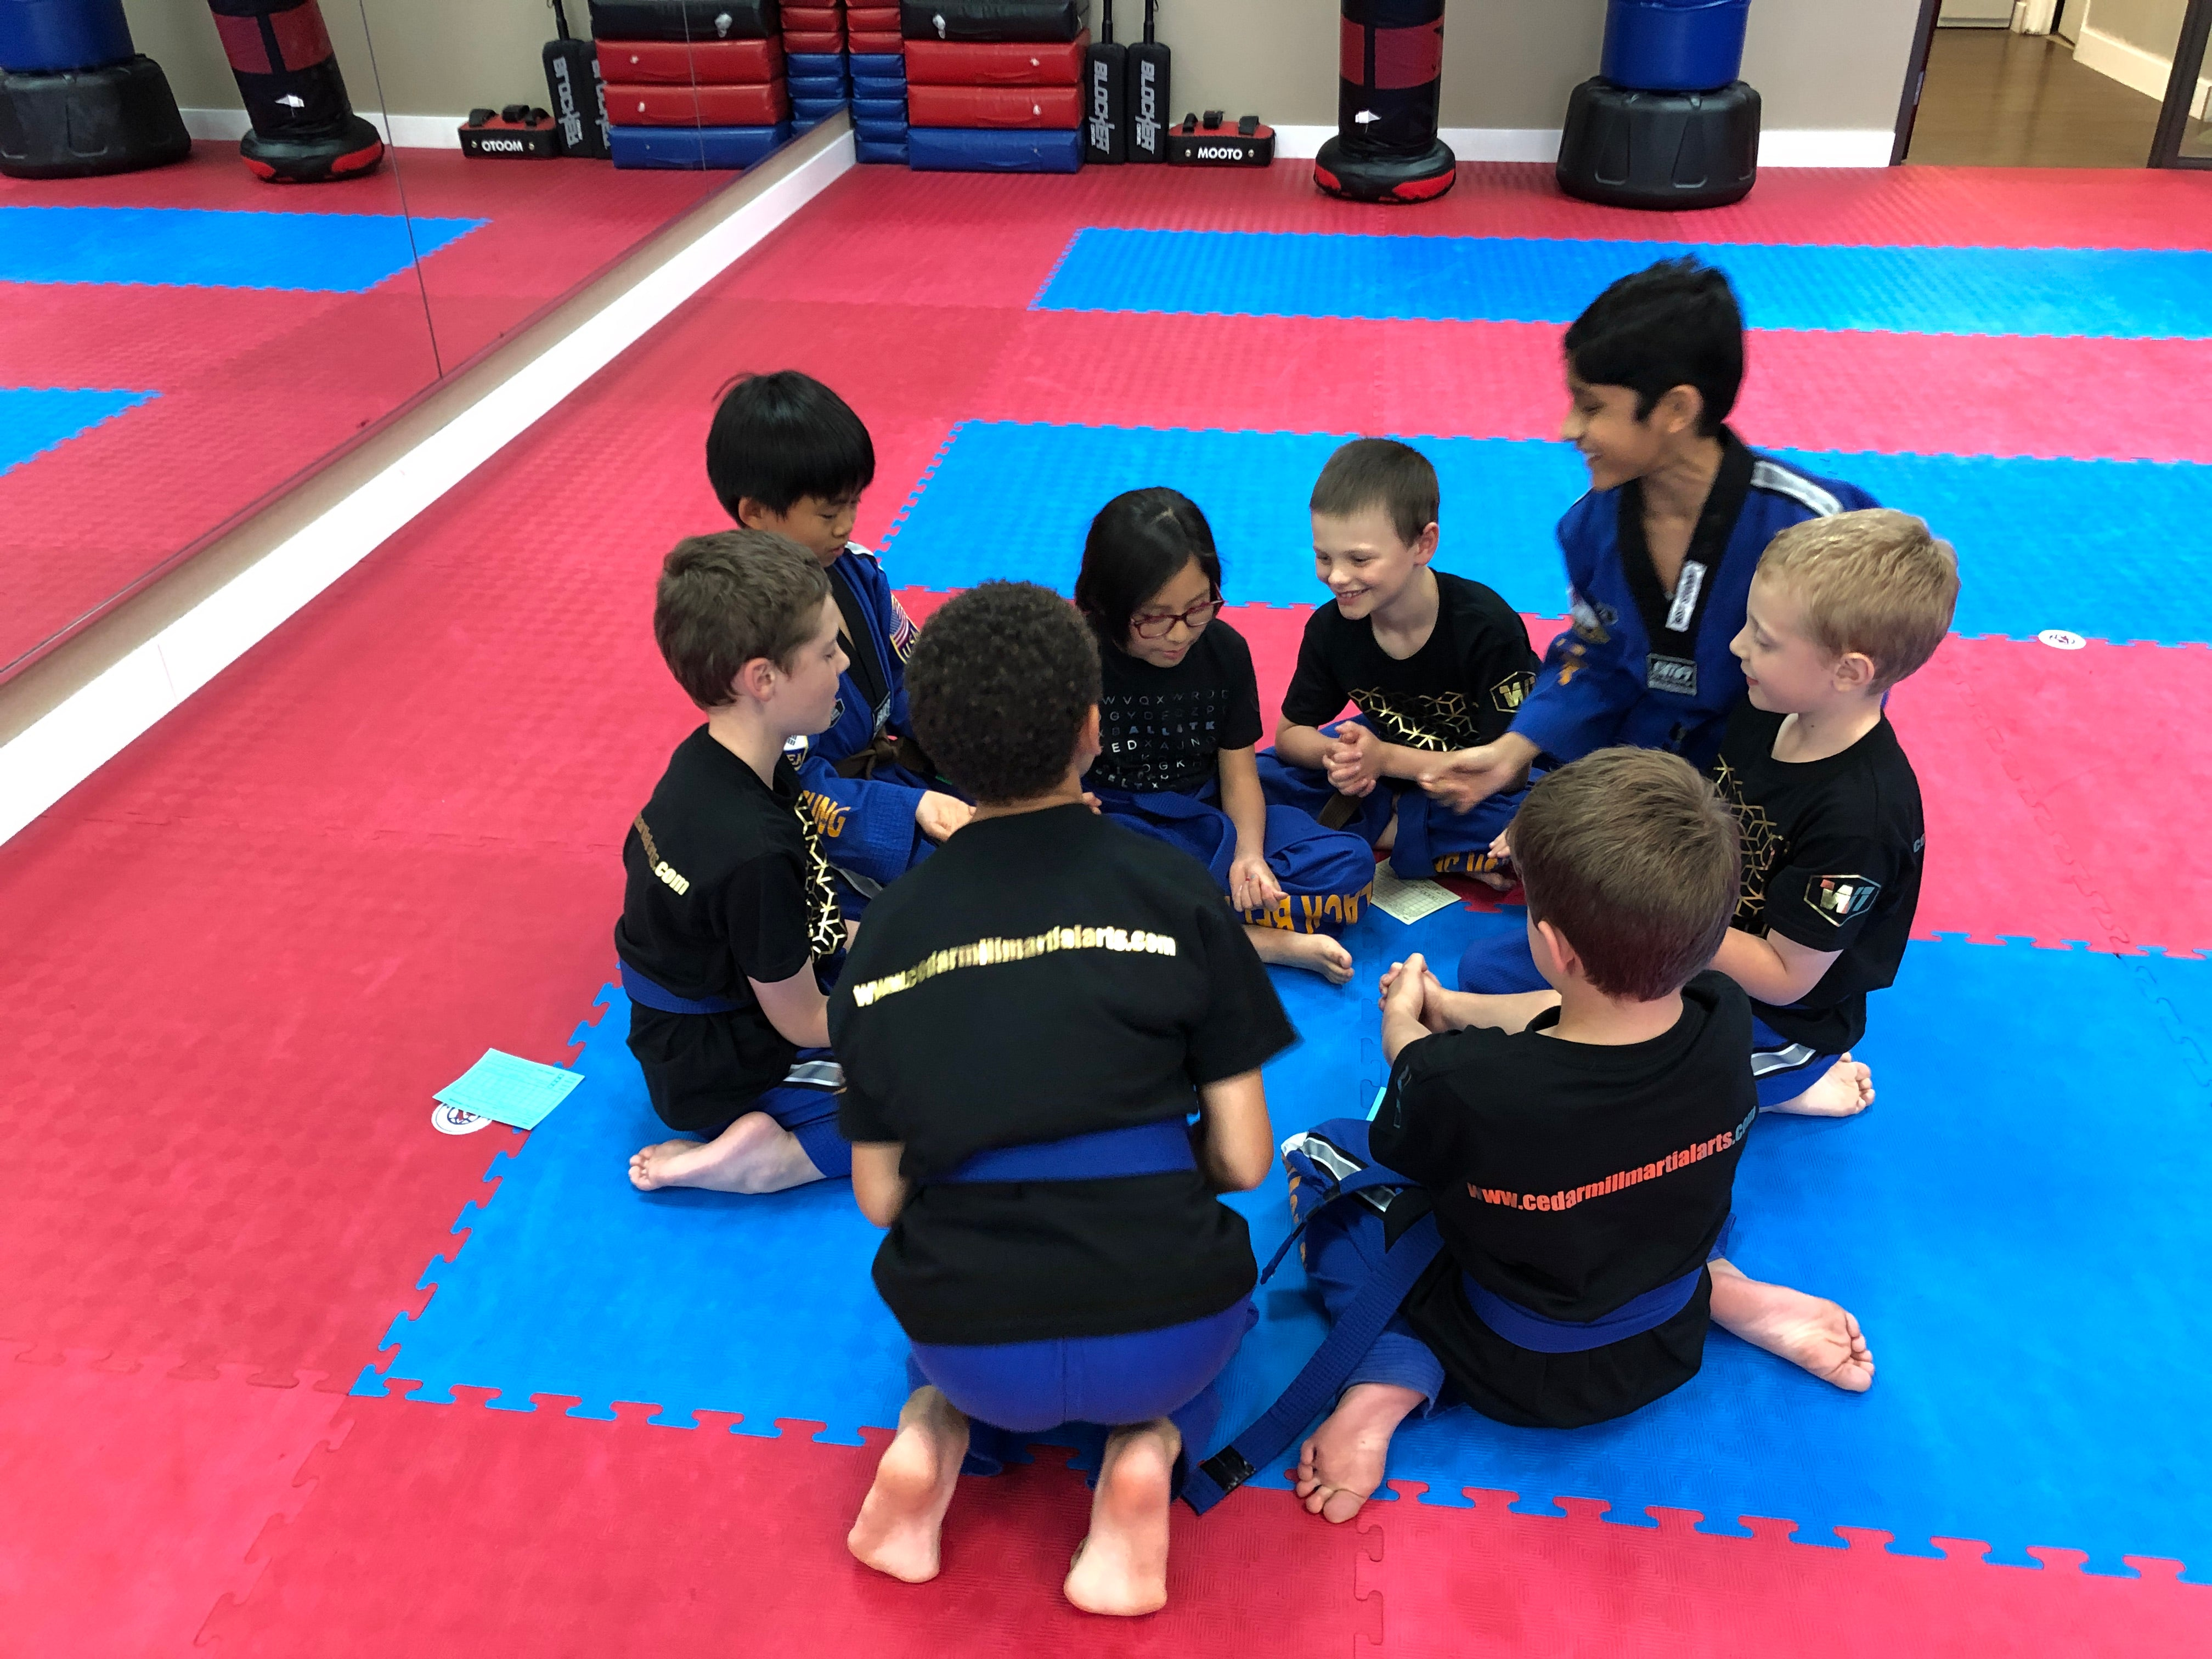 Summer Special - 6 weeks of Taekwondo Trial for kids. Ends on July 20th.